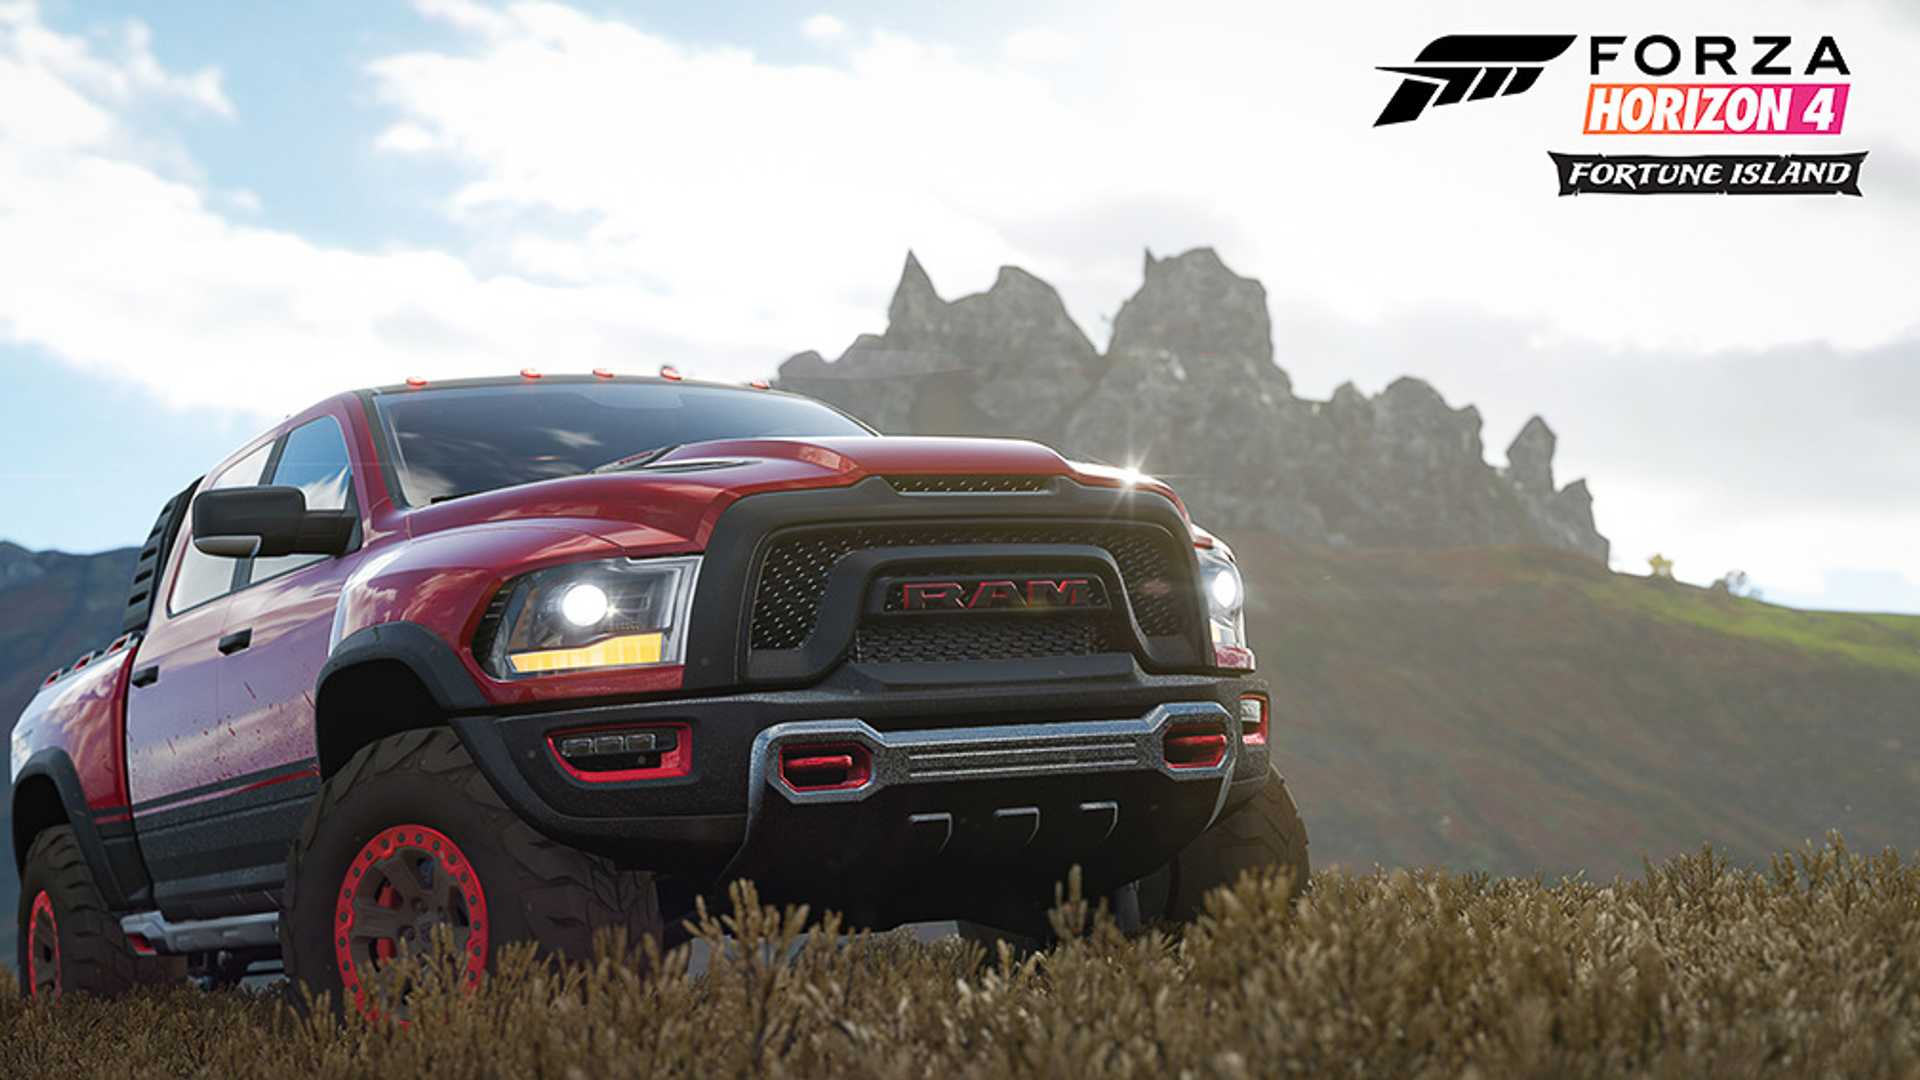 forza-horizon-4-fortune-island-expansion (4)